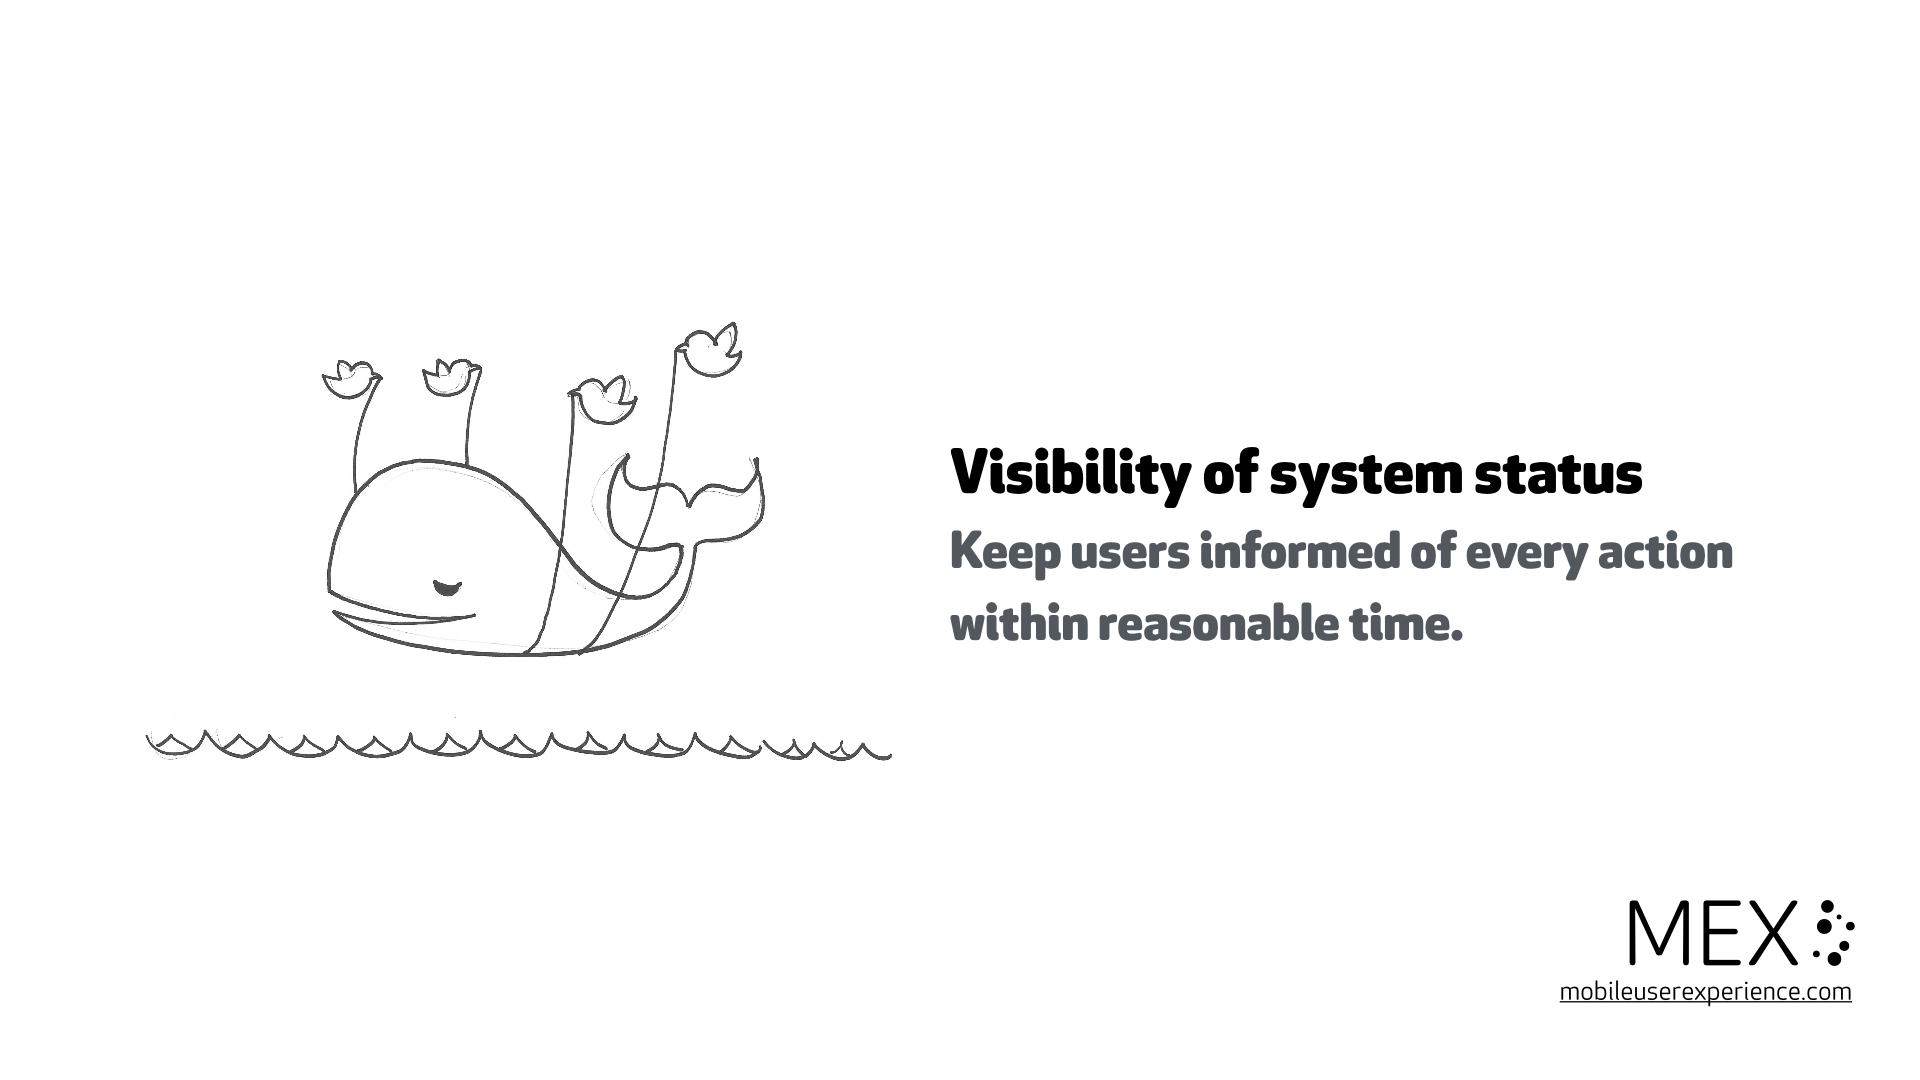 Visibility of system status Keep users informed of every action within reasonable time.